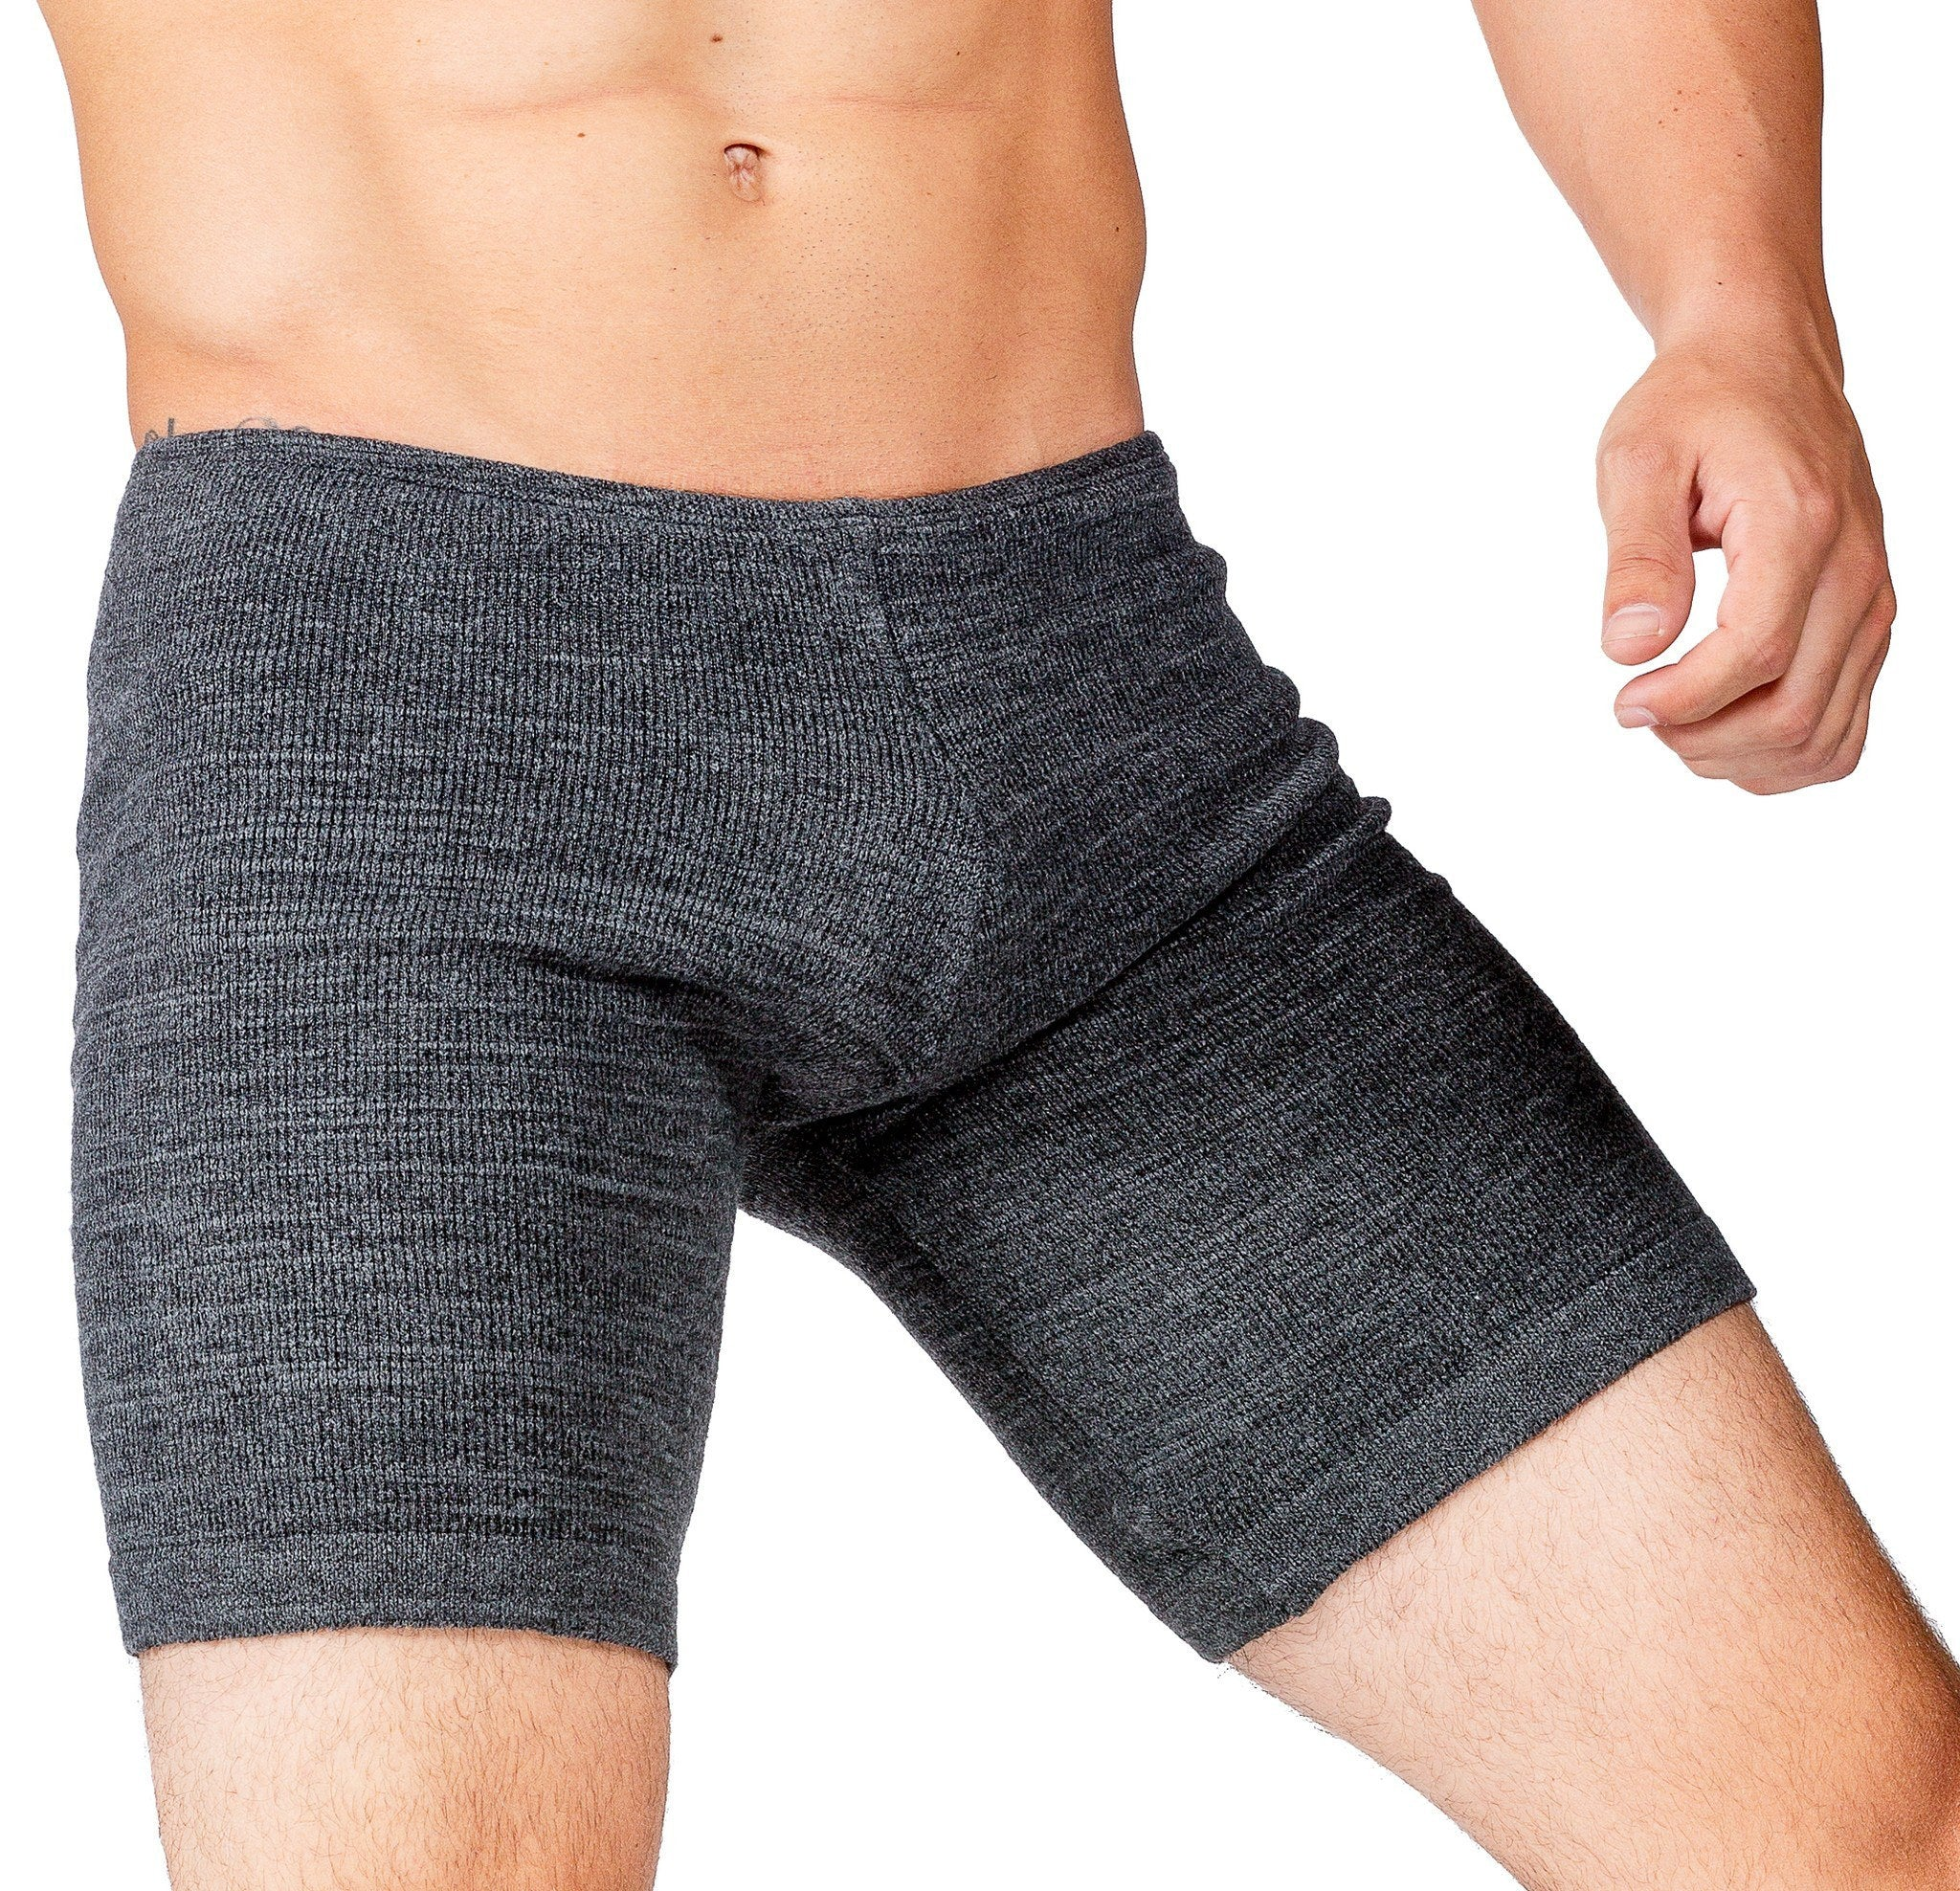 Small / Charcoal Male Dancewear Shorts / Men's Leg Warmers / Gray @KDdanceNewYork #MadeInUSA - 8